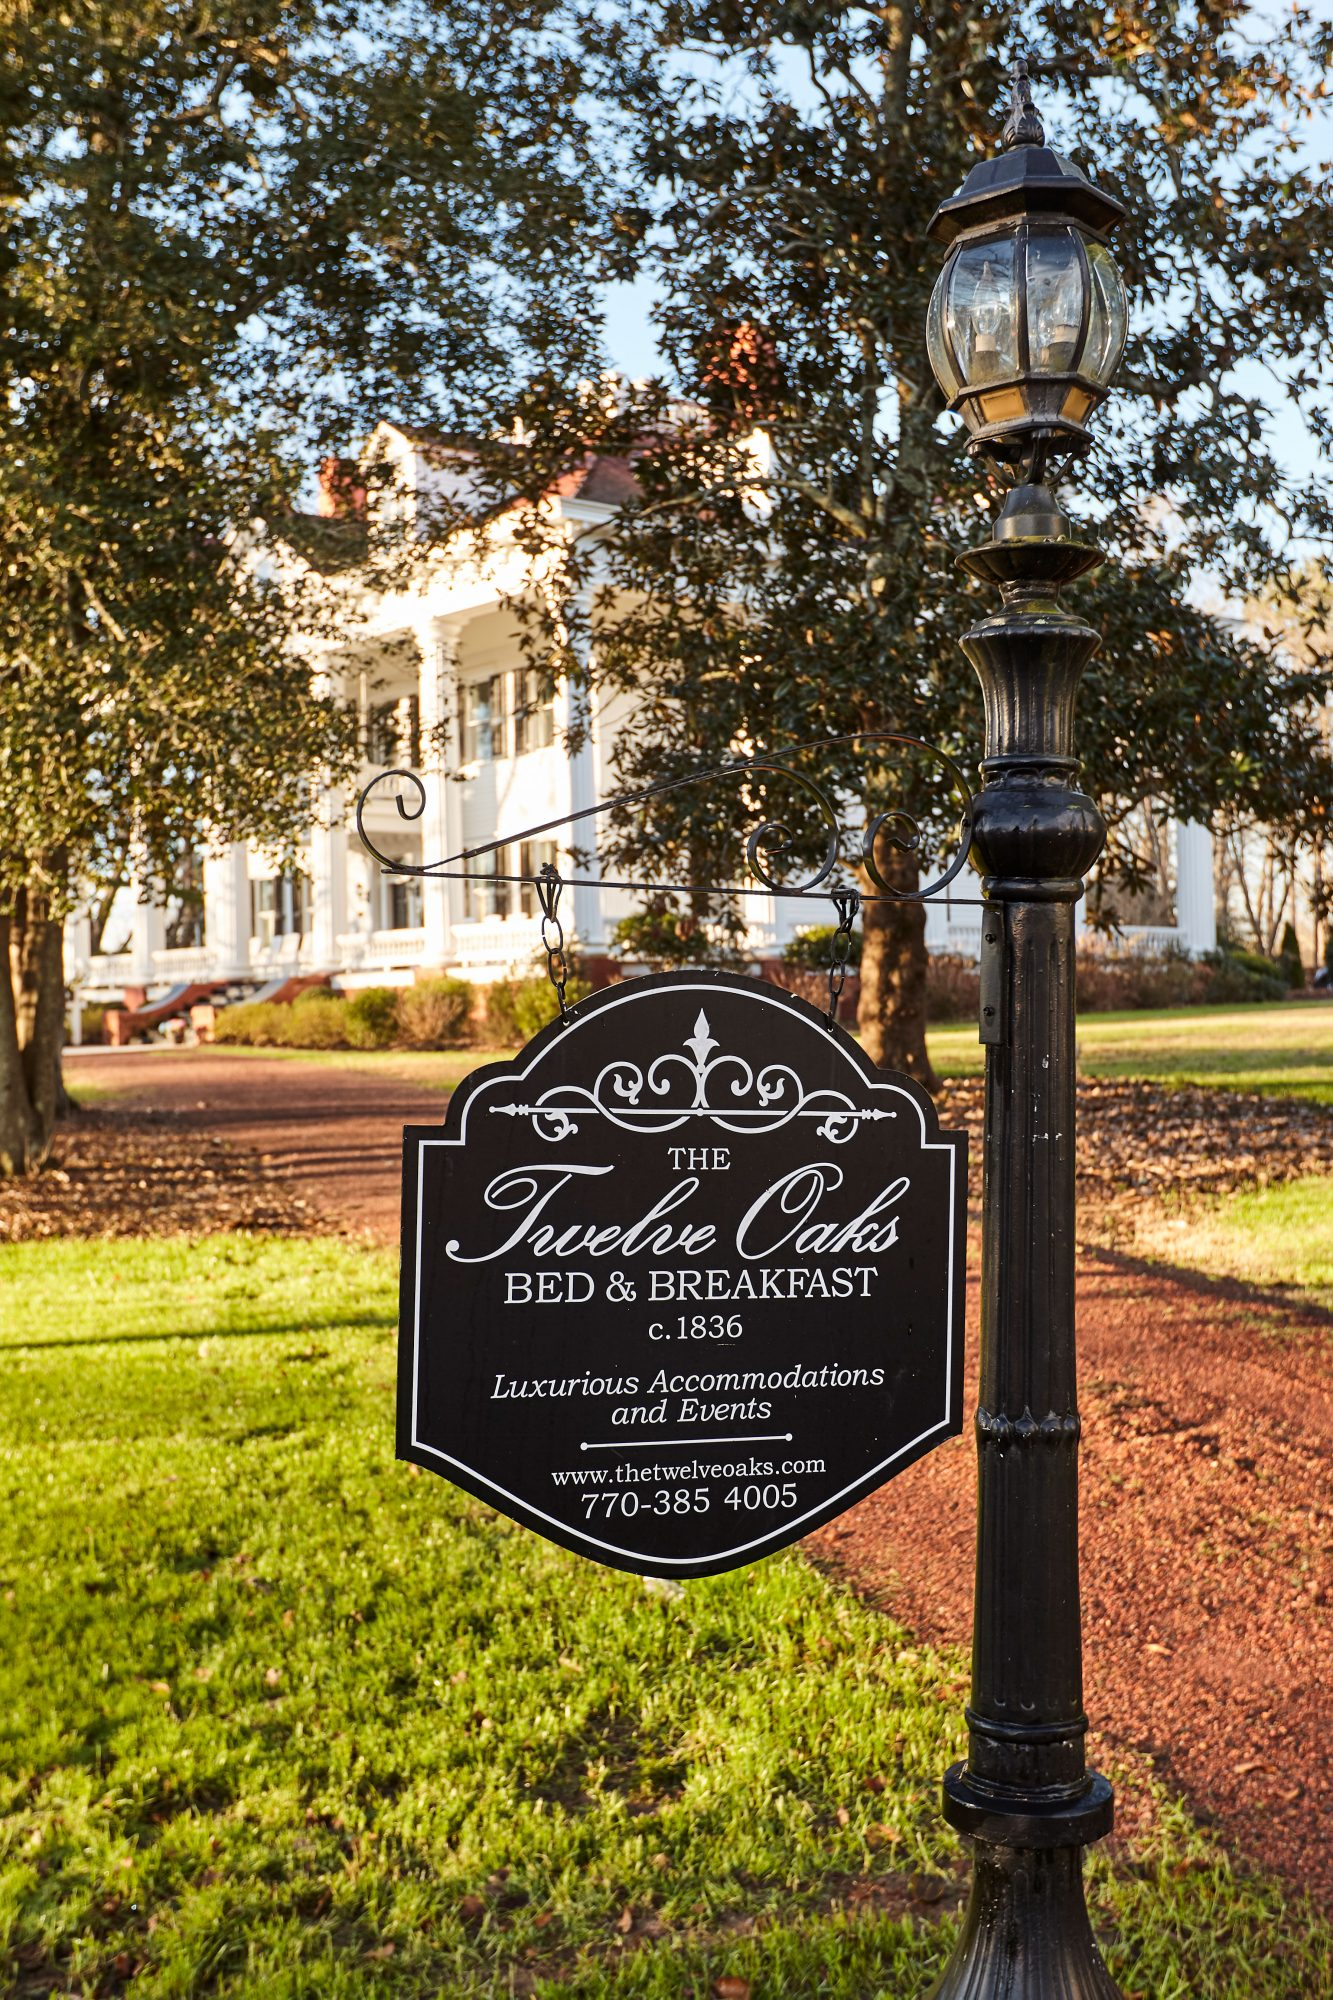 Twelve Oaks Inn the Mansion that Inspired Gone with the Wind House